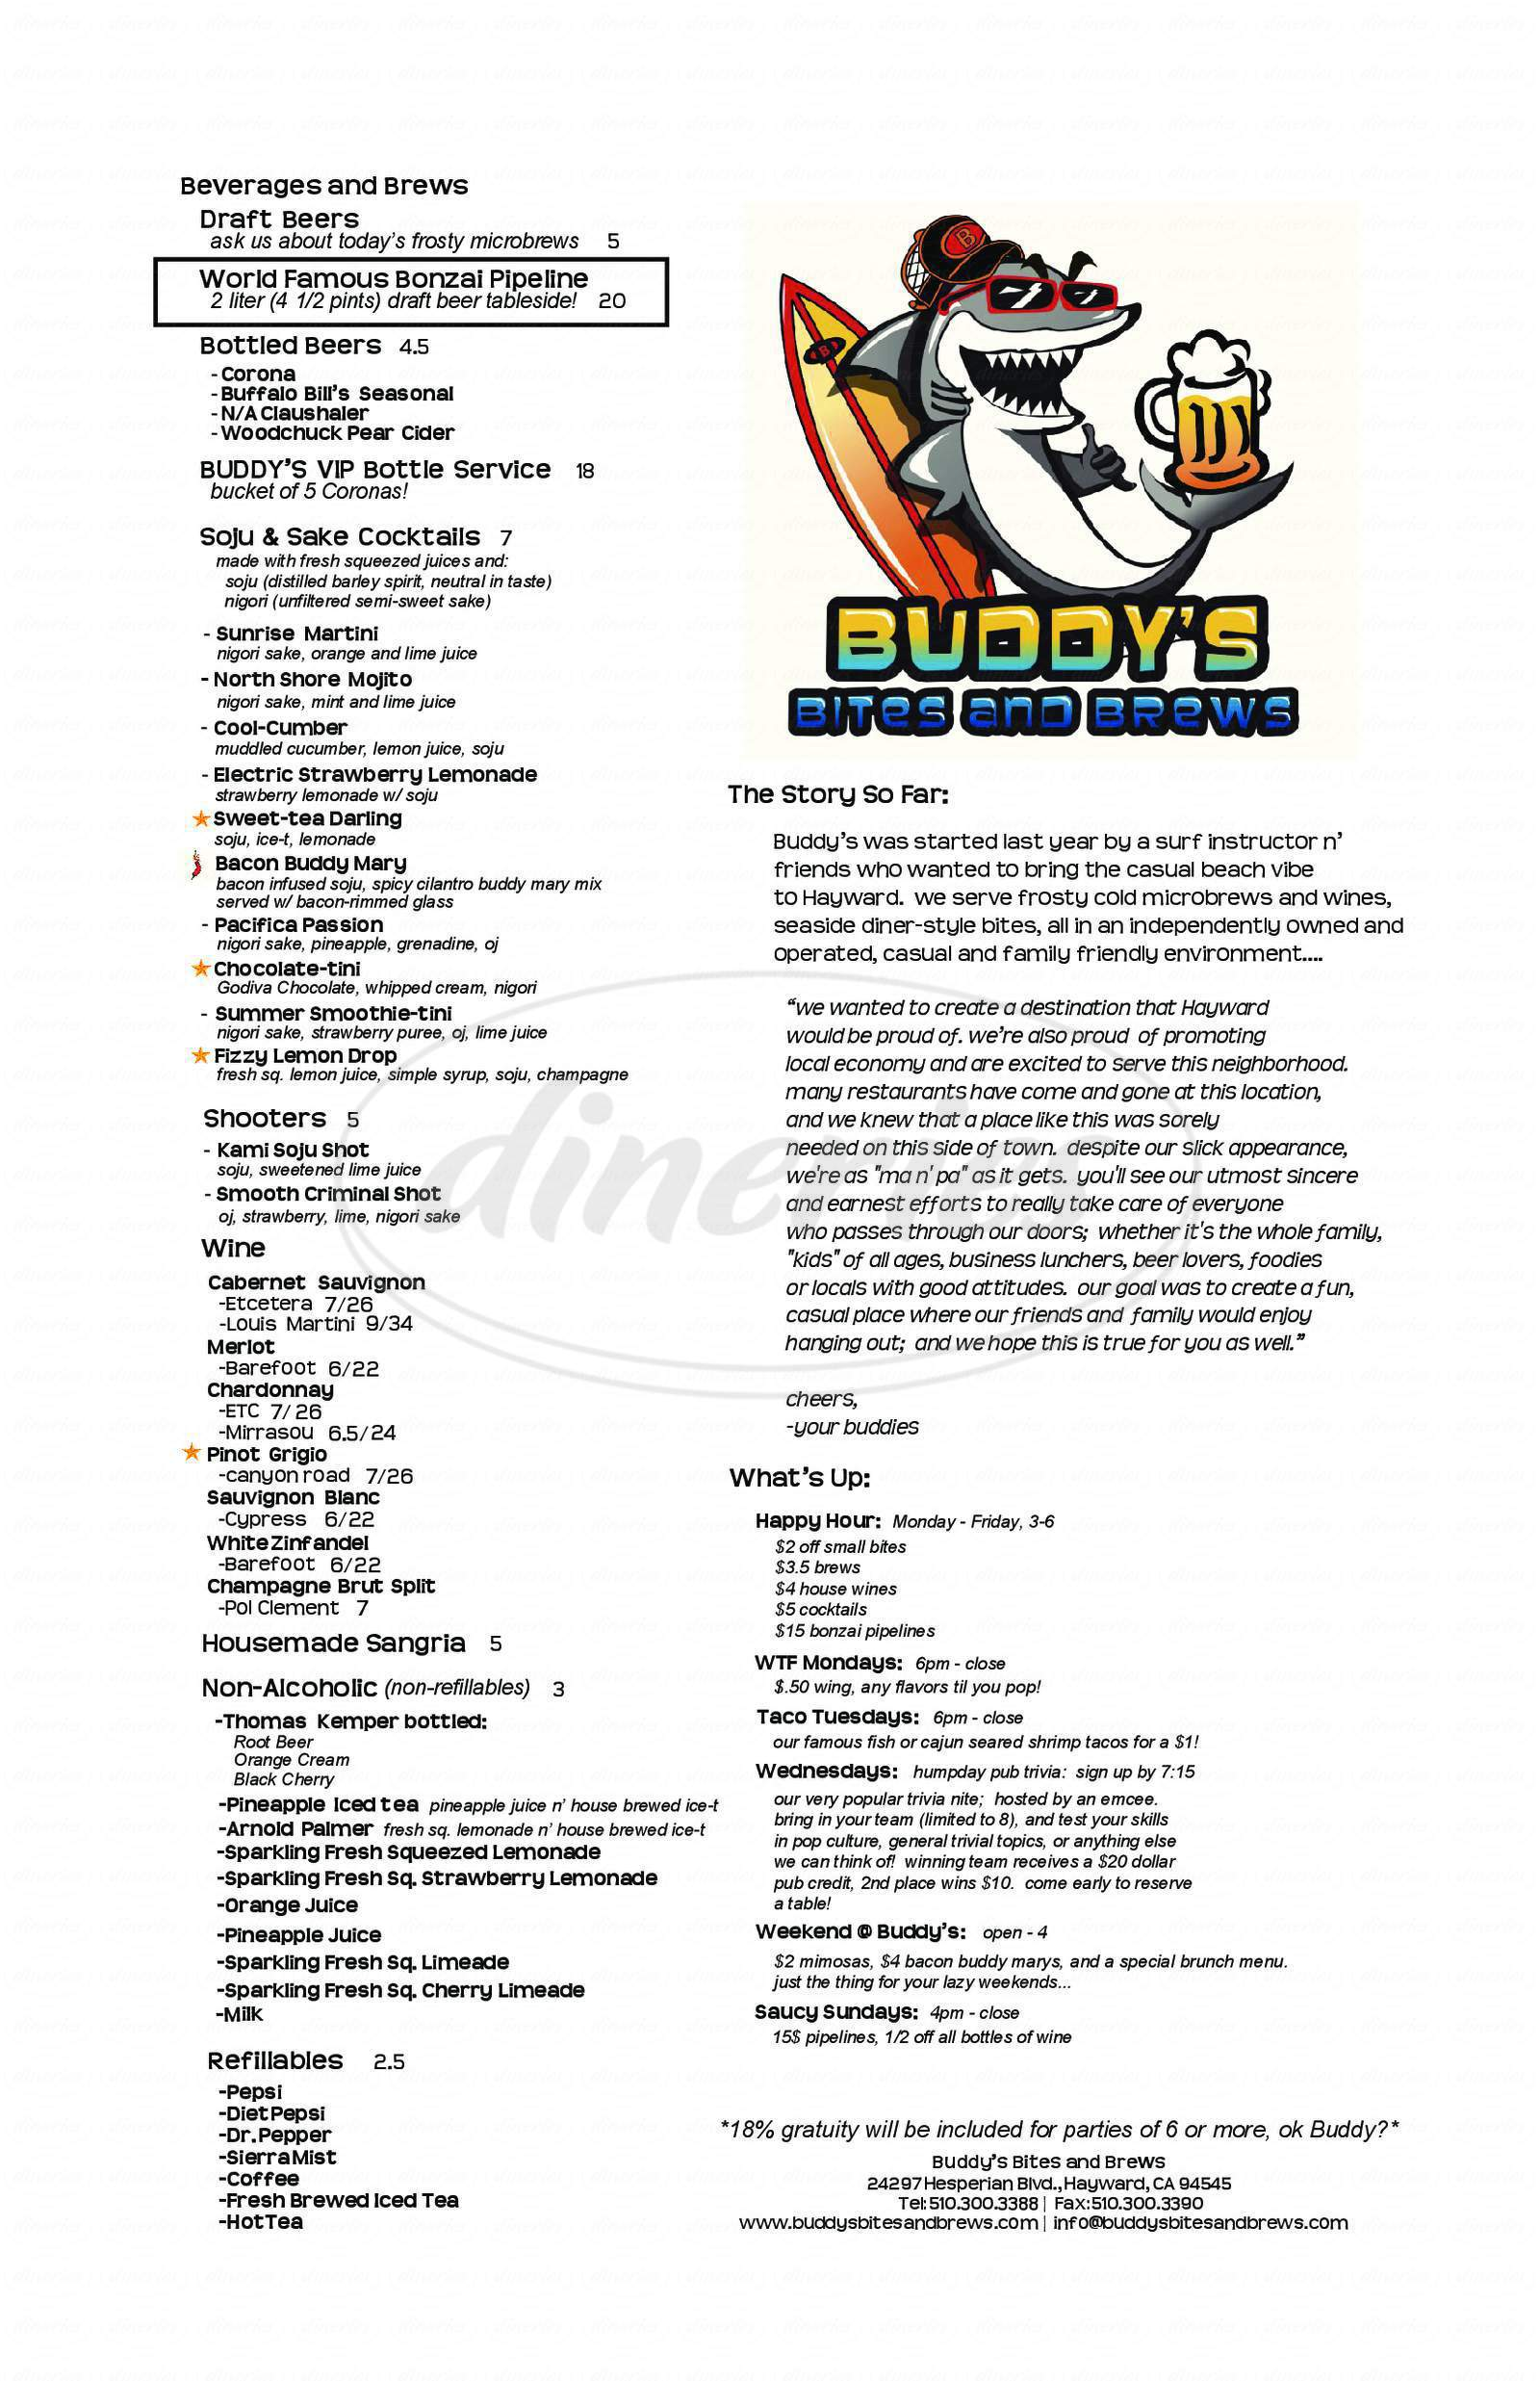 menu for Buddy's Bites and Brews